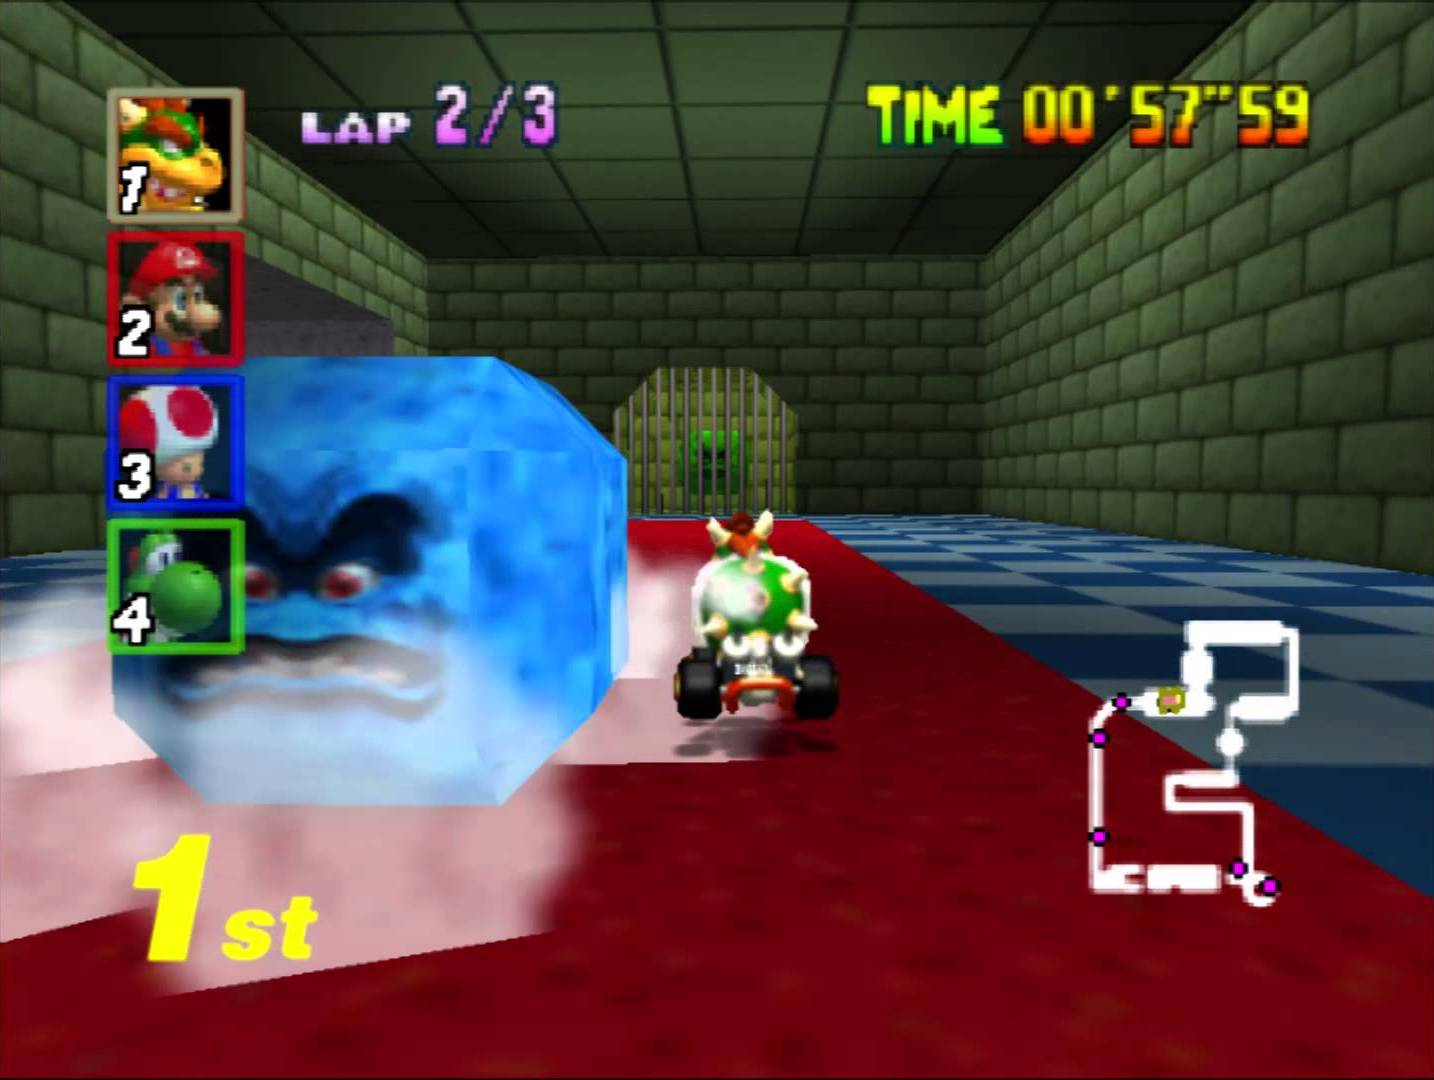 The 15 Best Mario Kart Tracks - Paste